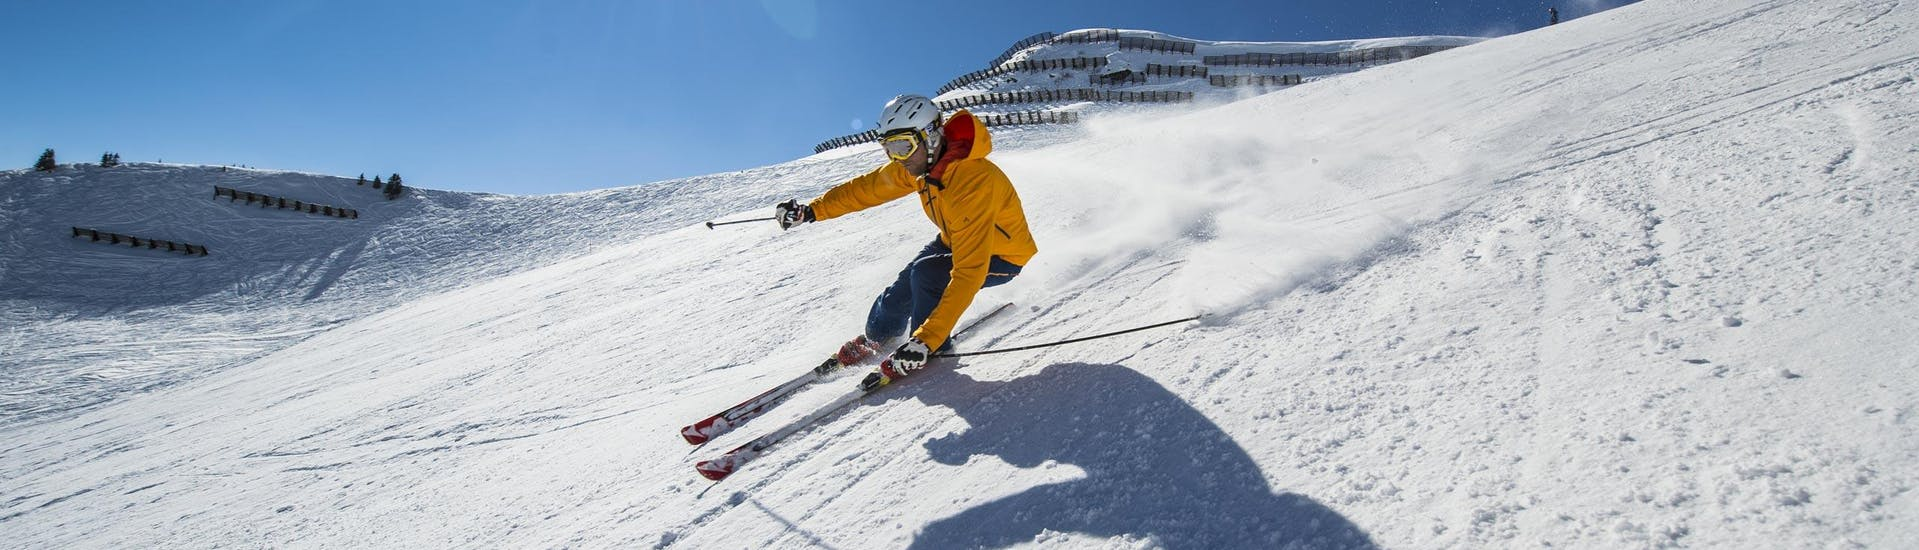 Private Ski Lessons for Adults of All Levels: A skier is skiing down a sunny ski slope while participating in an activity offered by Schischule Glungezer.